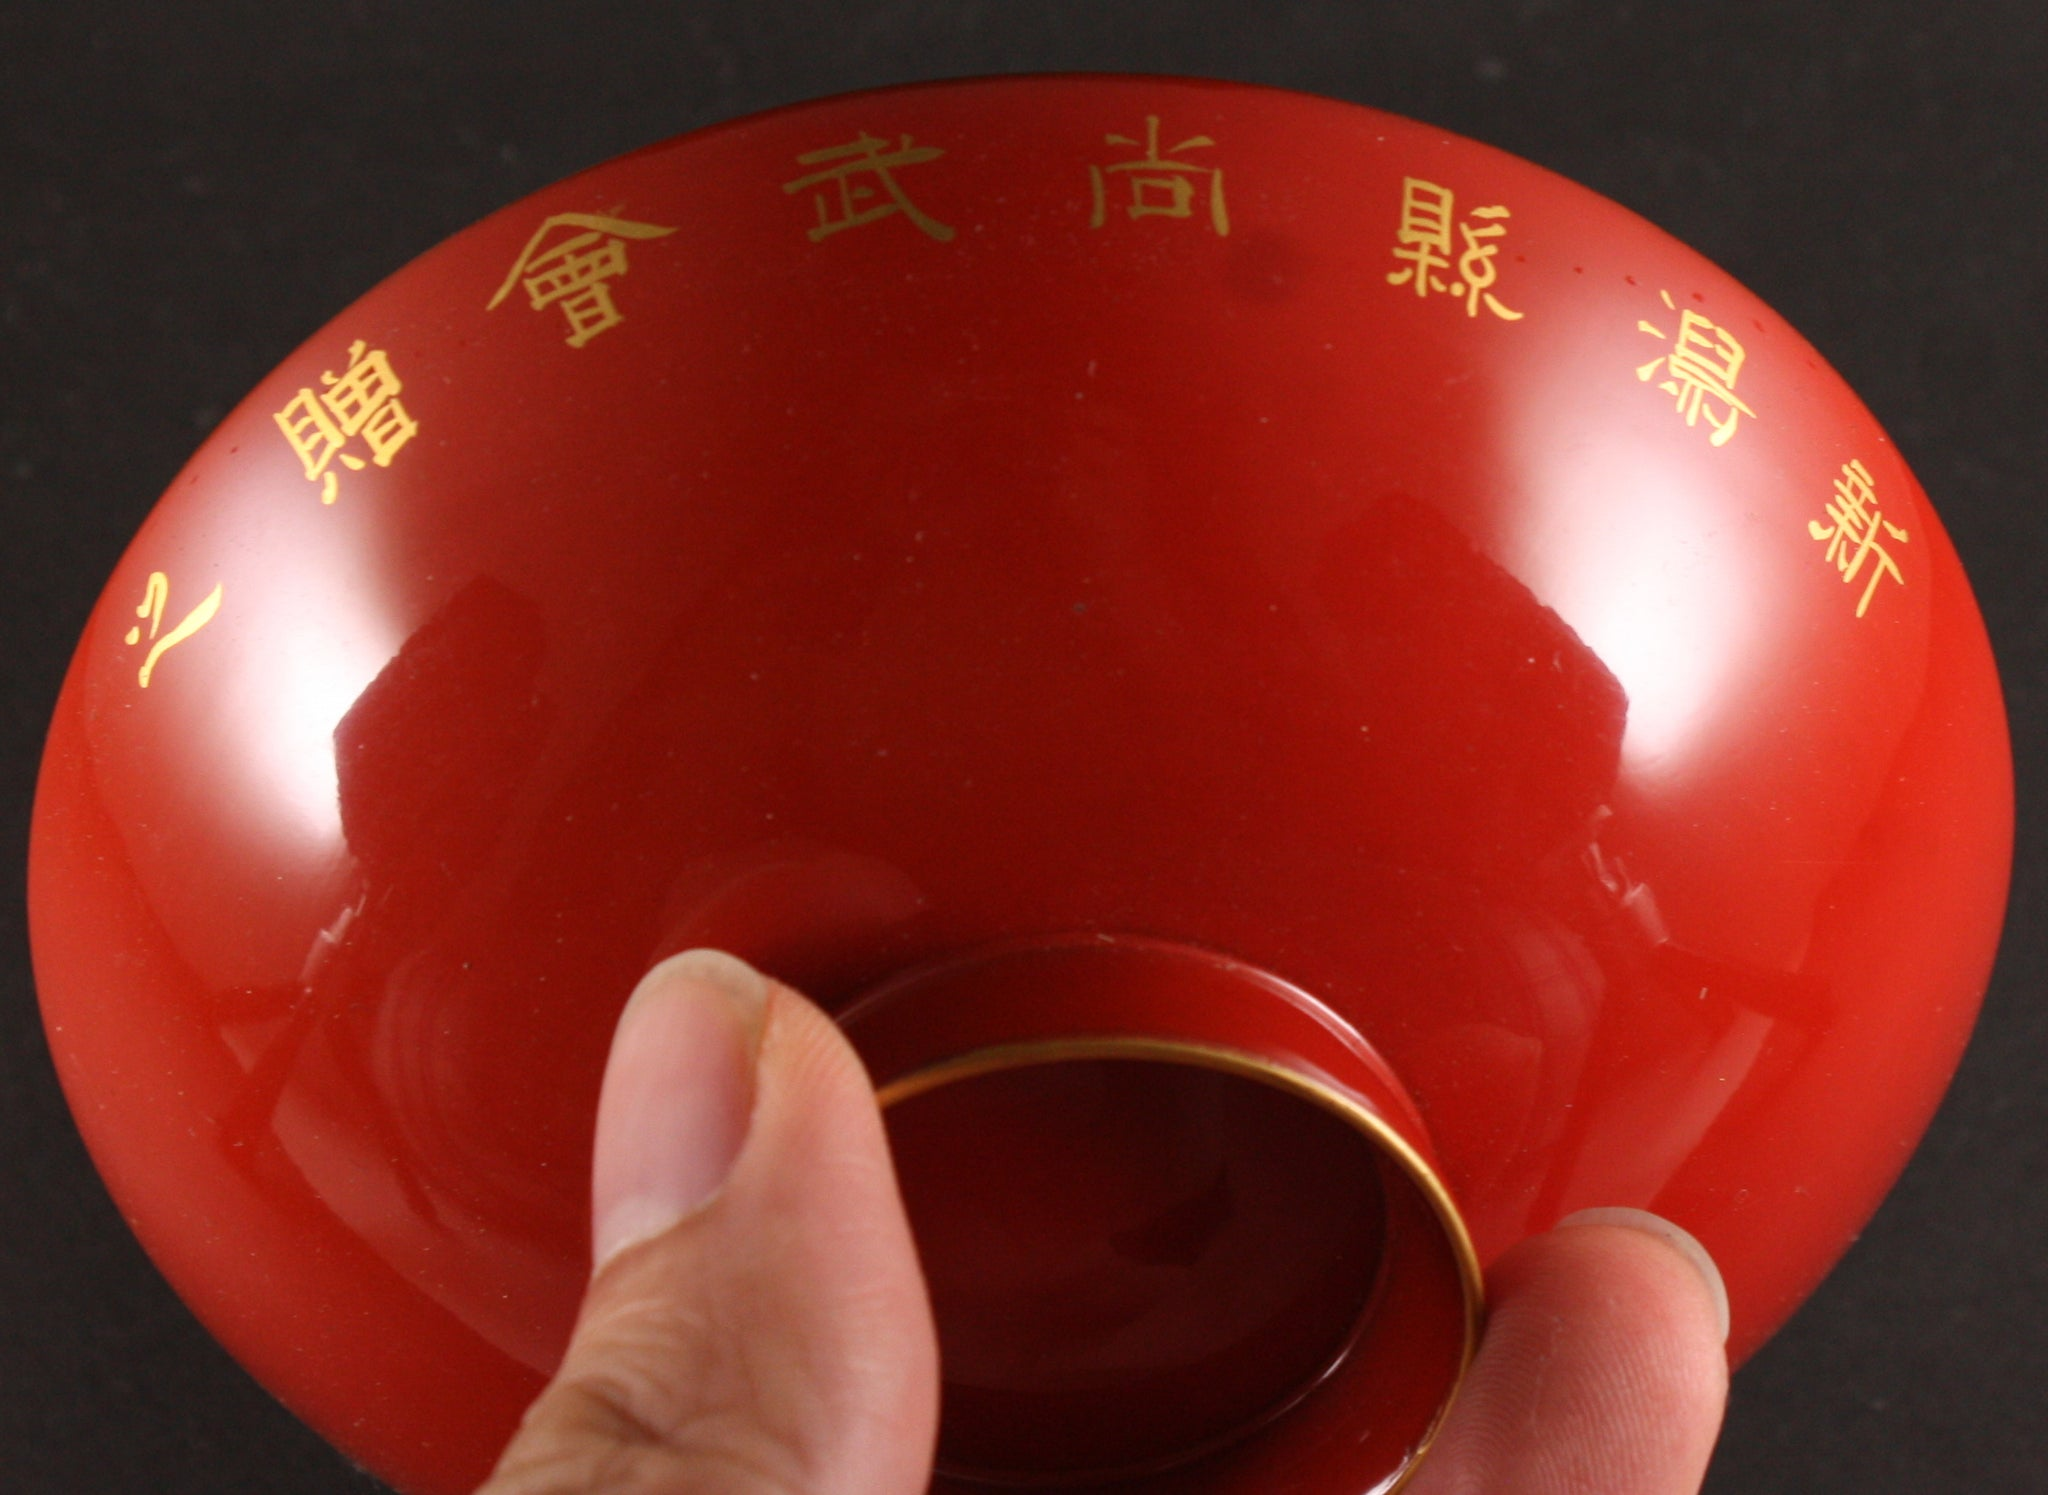 Very Rare Antique Japanese Military 1895 Golden Kite Sinking Enemy Ship Lacquer Sake Cup